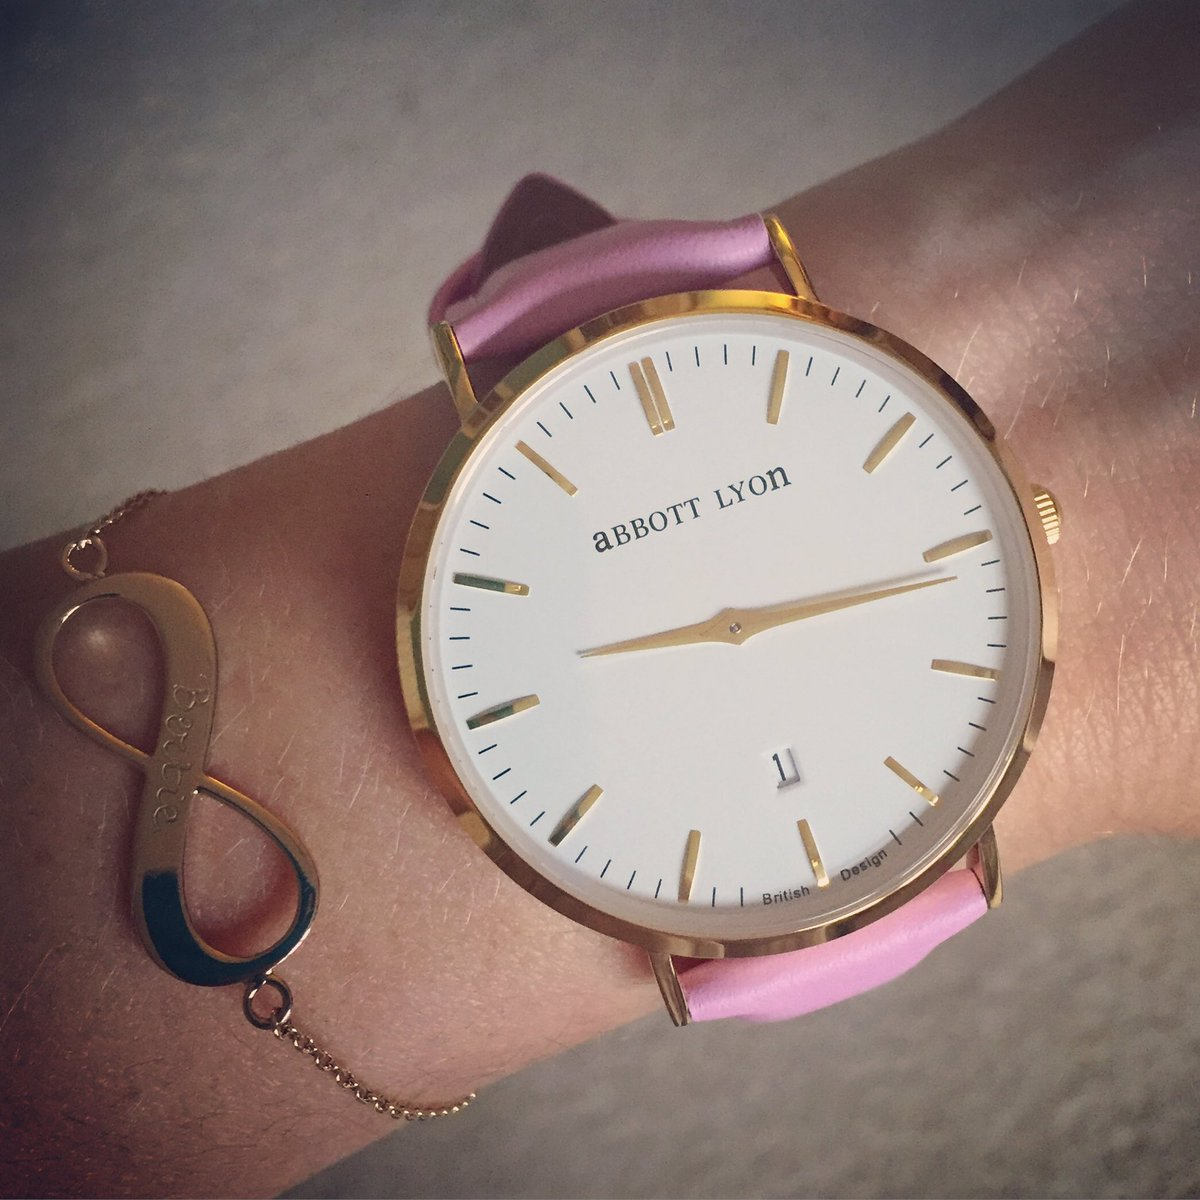 This morning's special delivery - my new @AbbottLyon watch. In pastel pink, obvs